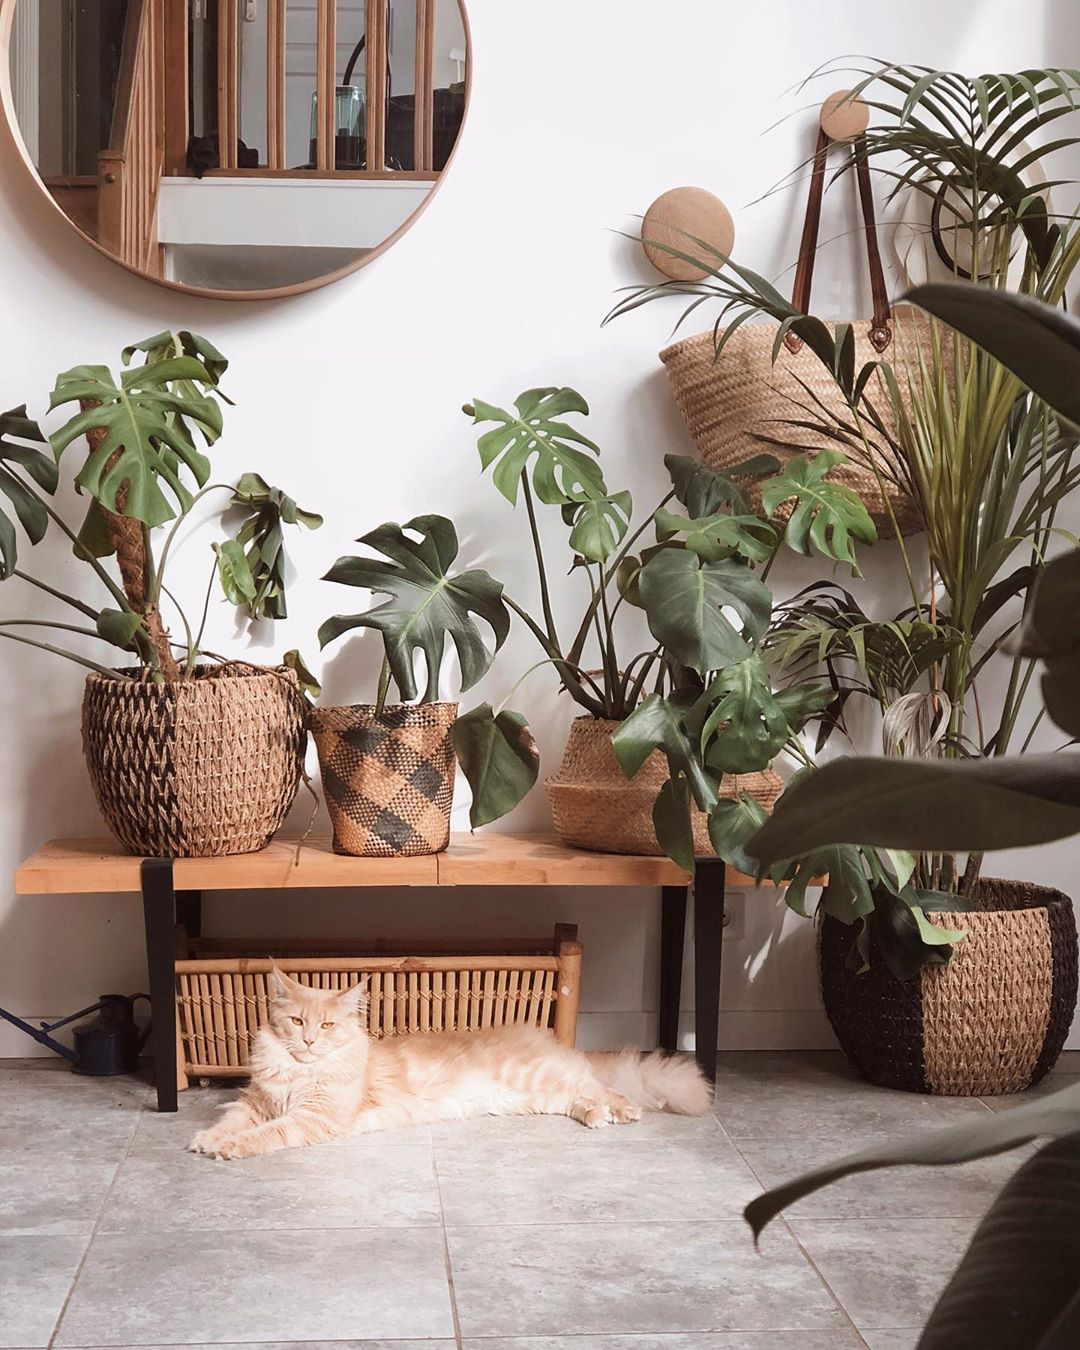 petite entrée urban jungle plein de plantes monstera palmier paris décoration